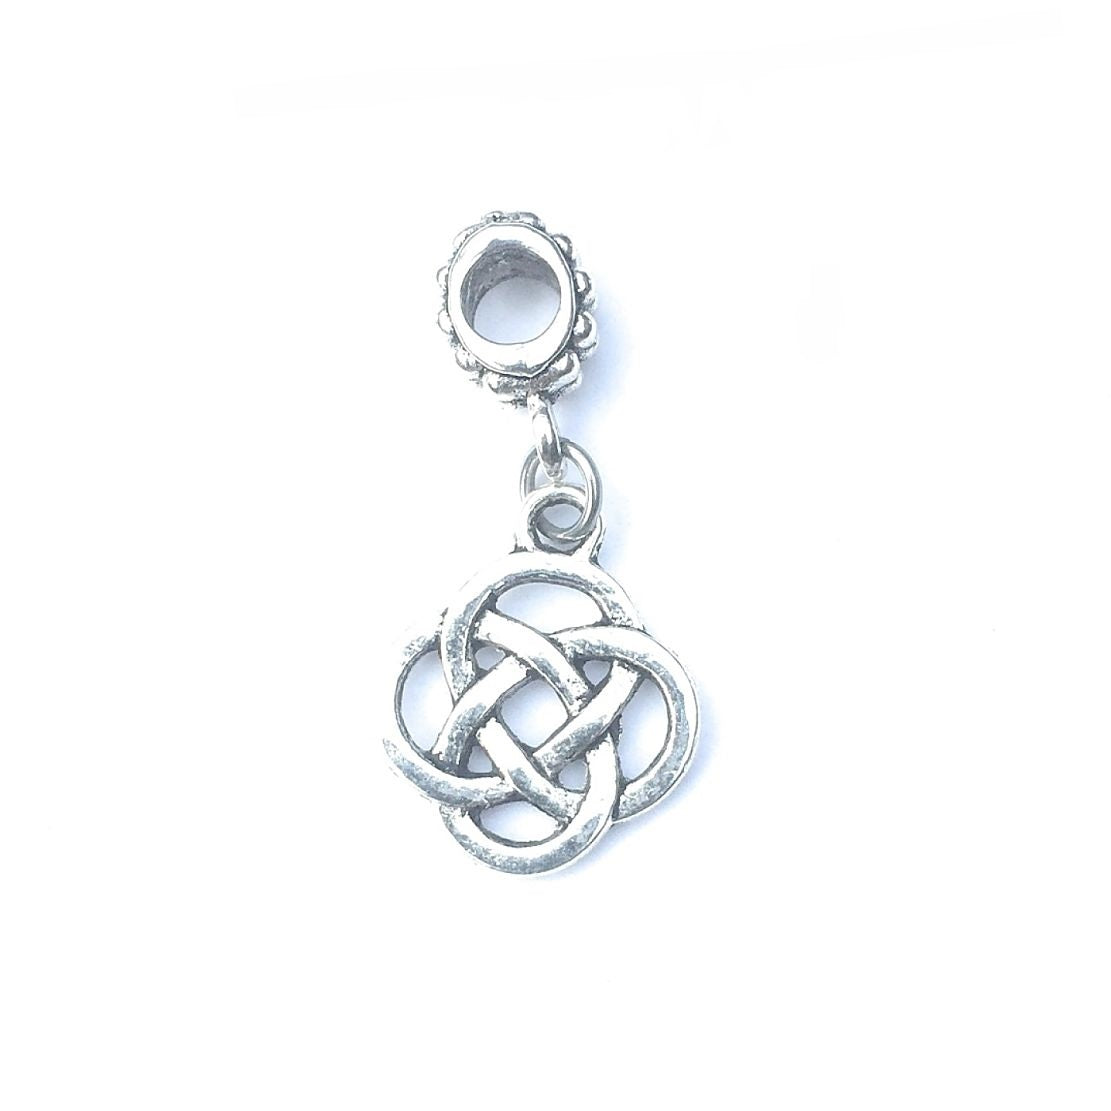 Handcrafted Silver Irish Love Knots Charm Bead for Bracelet.